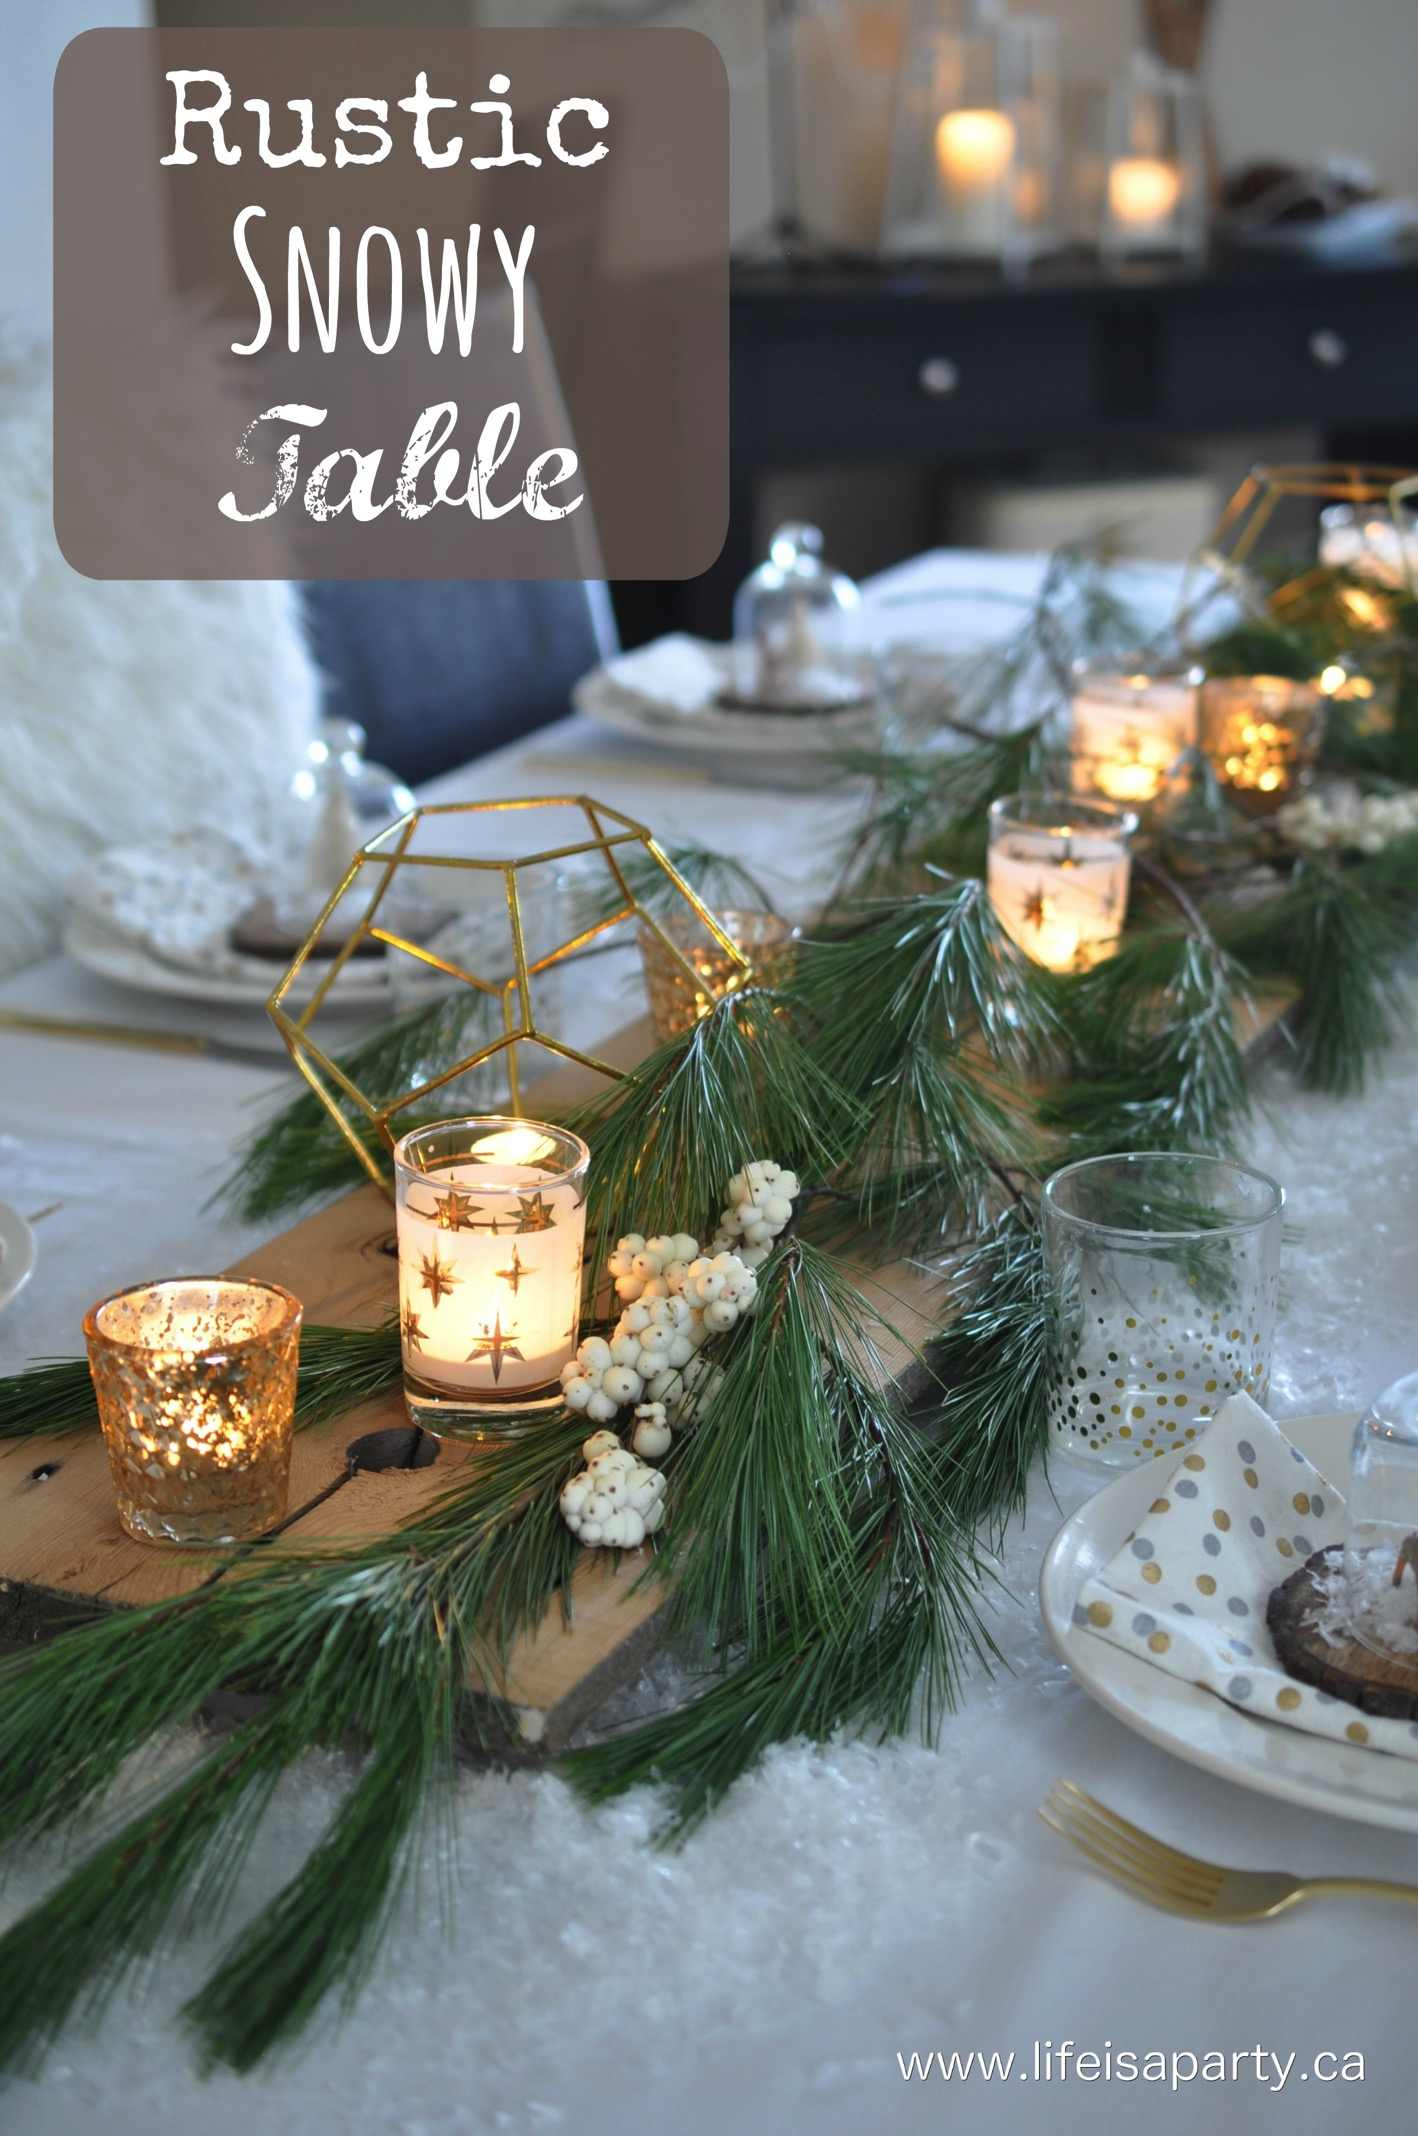 Rustic Snowy Table